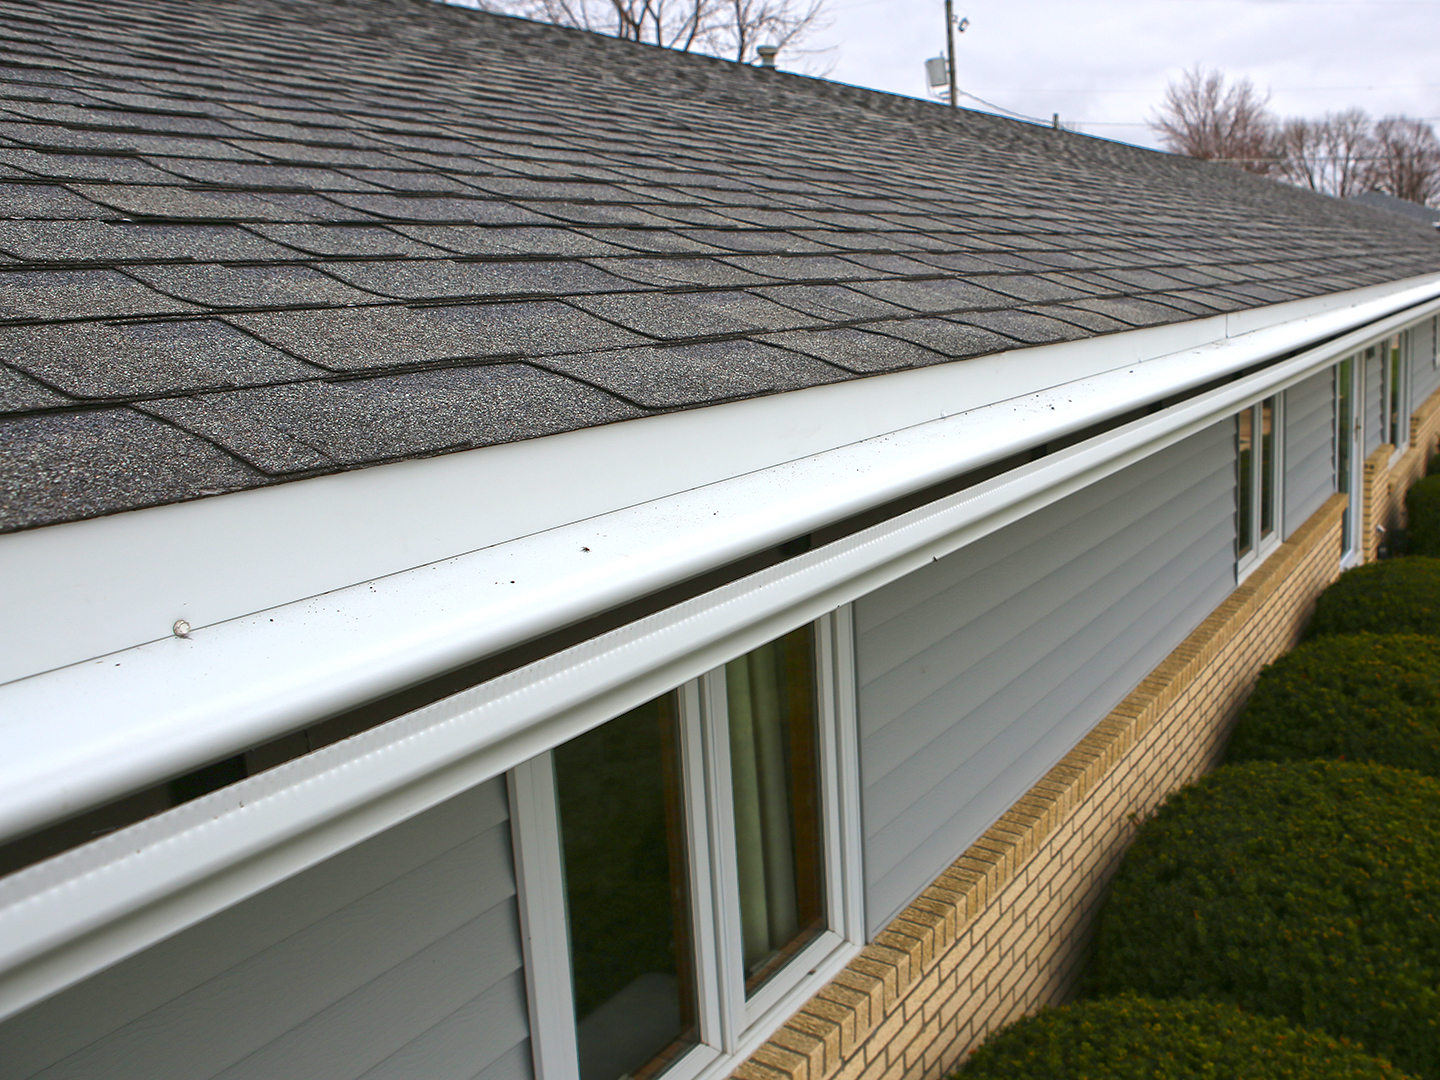 Leafguard 174 Seamless Gutters Vs Gutter Mesh And Covers